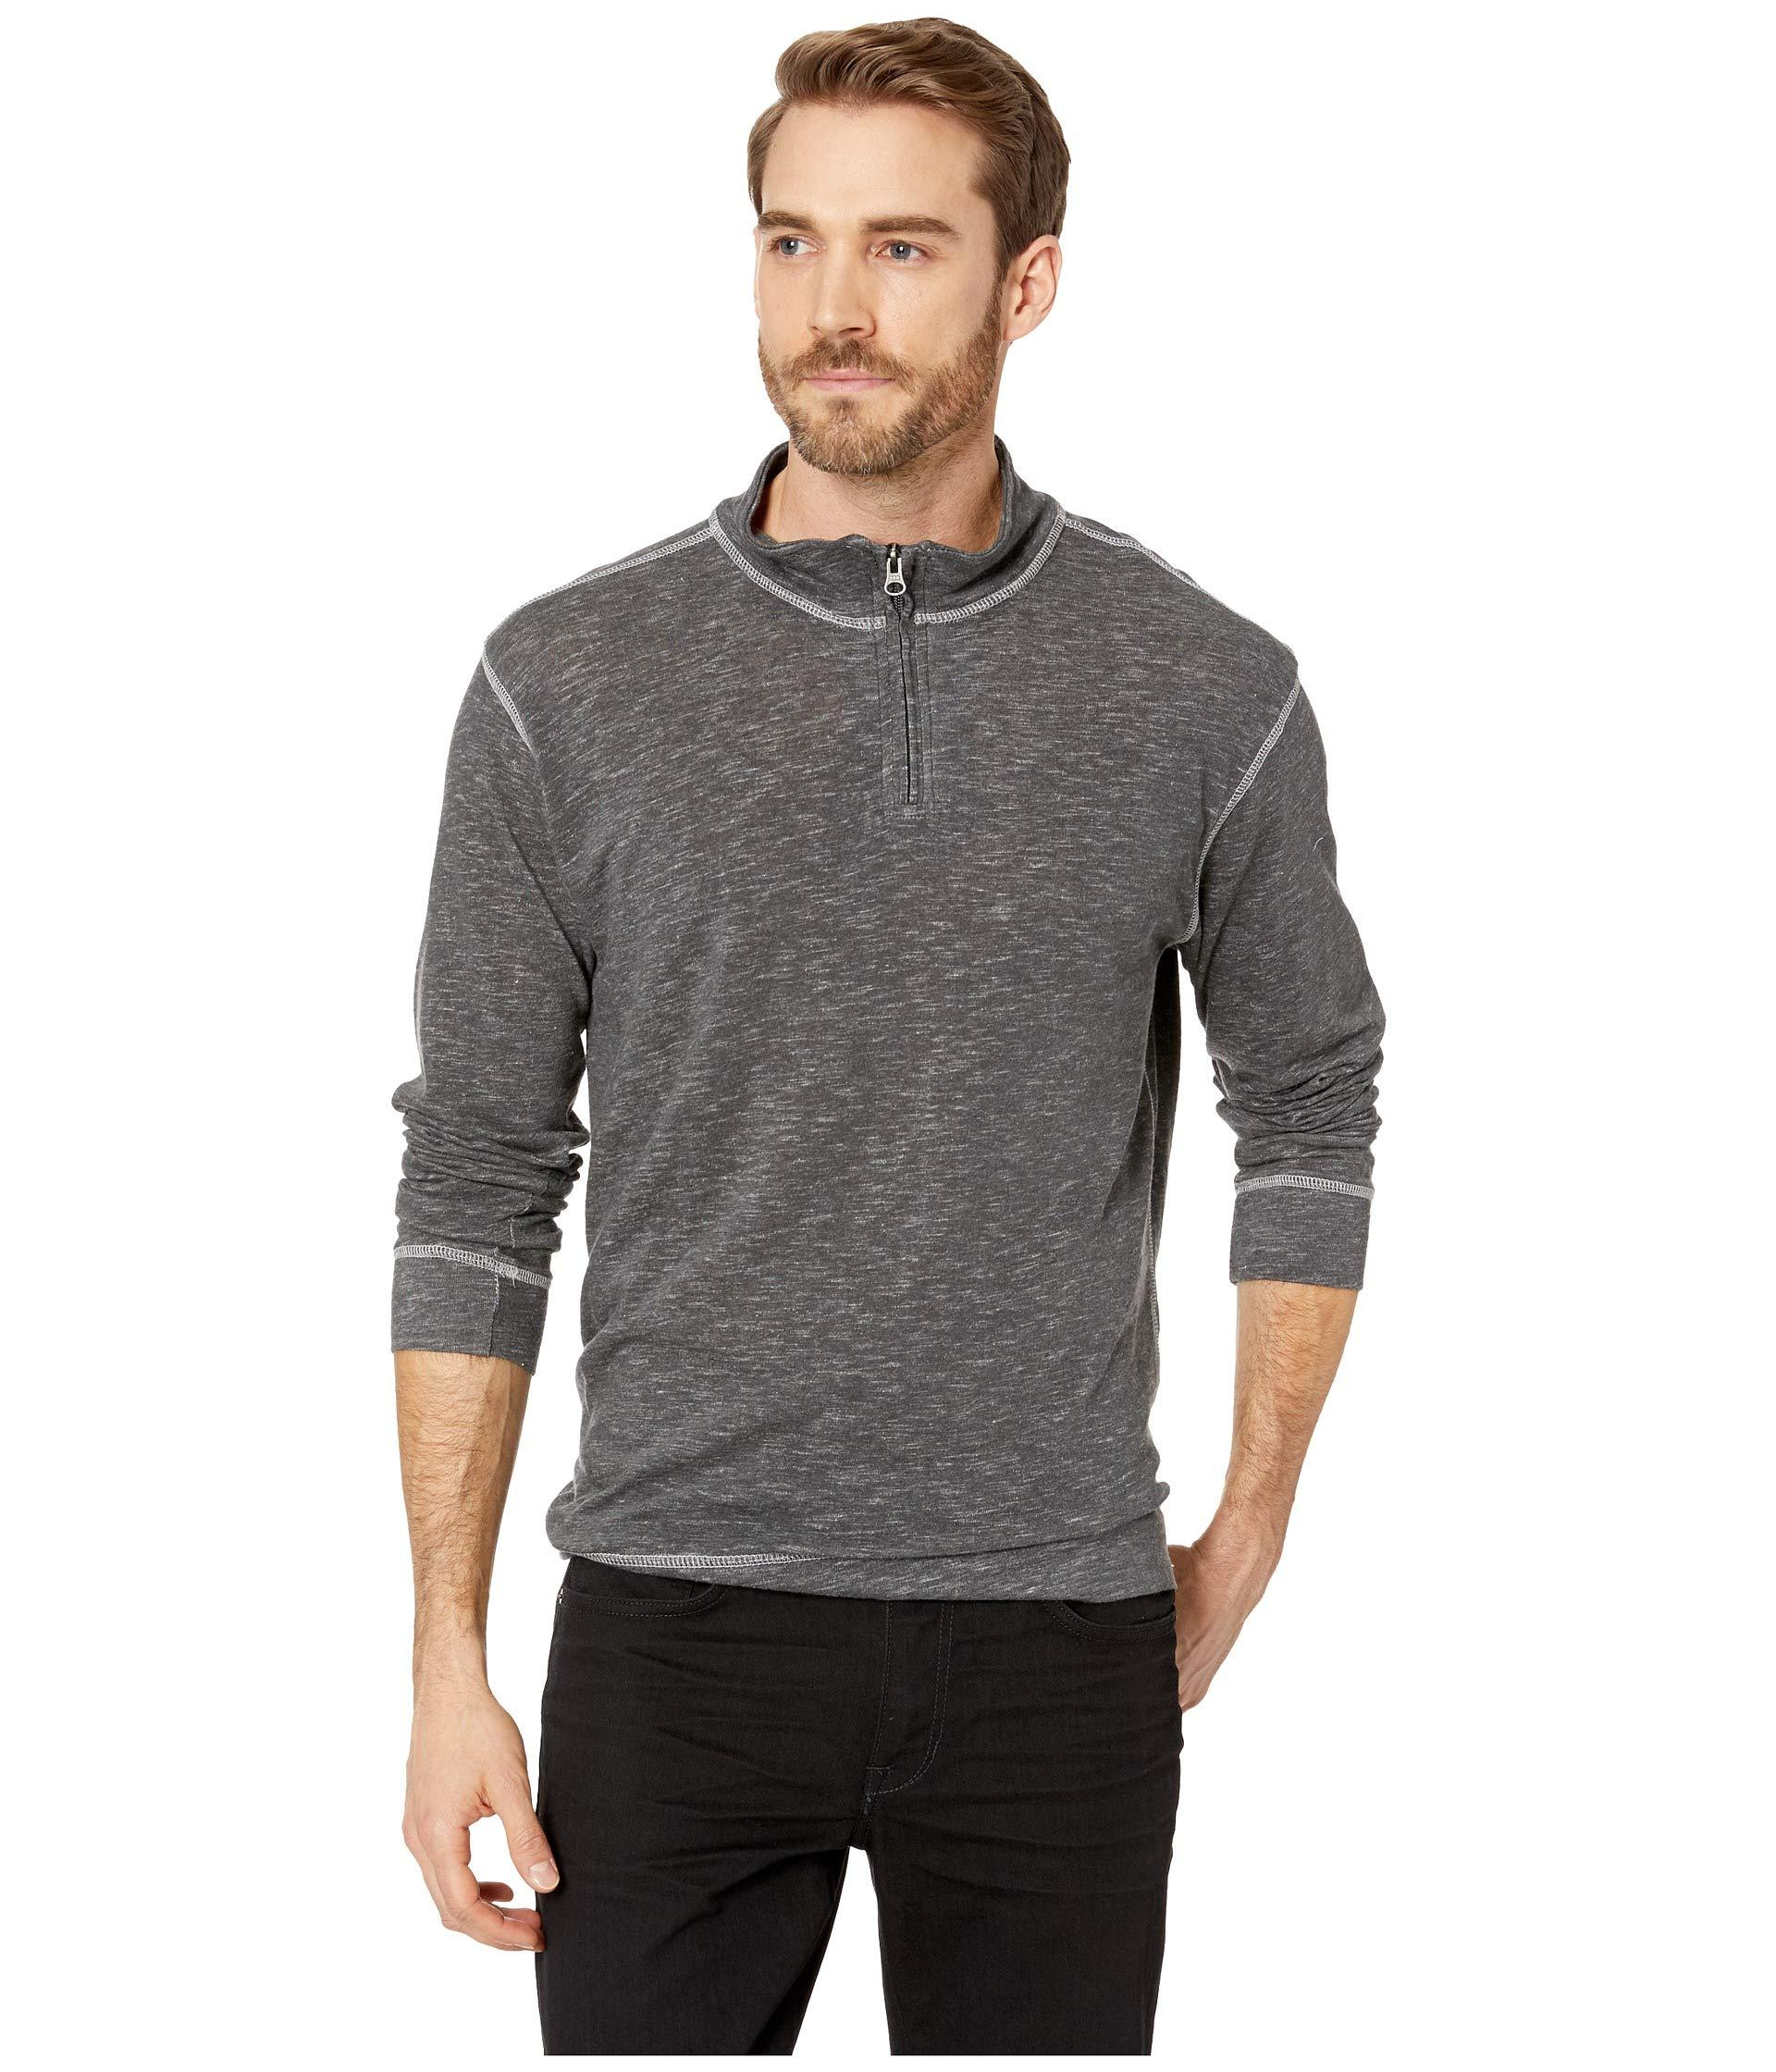 adf86af084cd Lyst - Vintage 1946 Space Dyed Jersey 1 4 Zip in Gray for Men - Save 7%